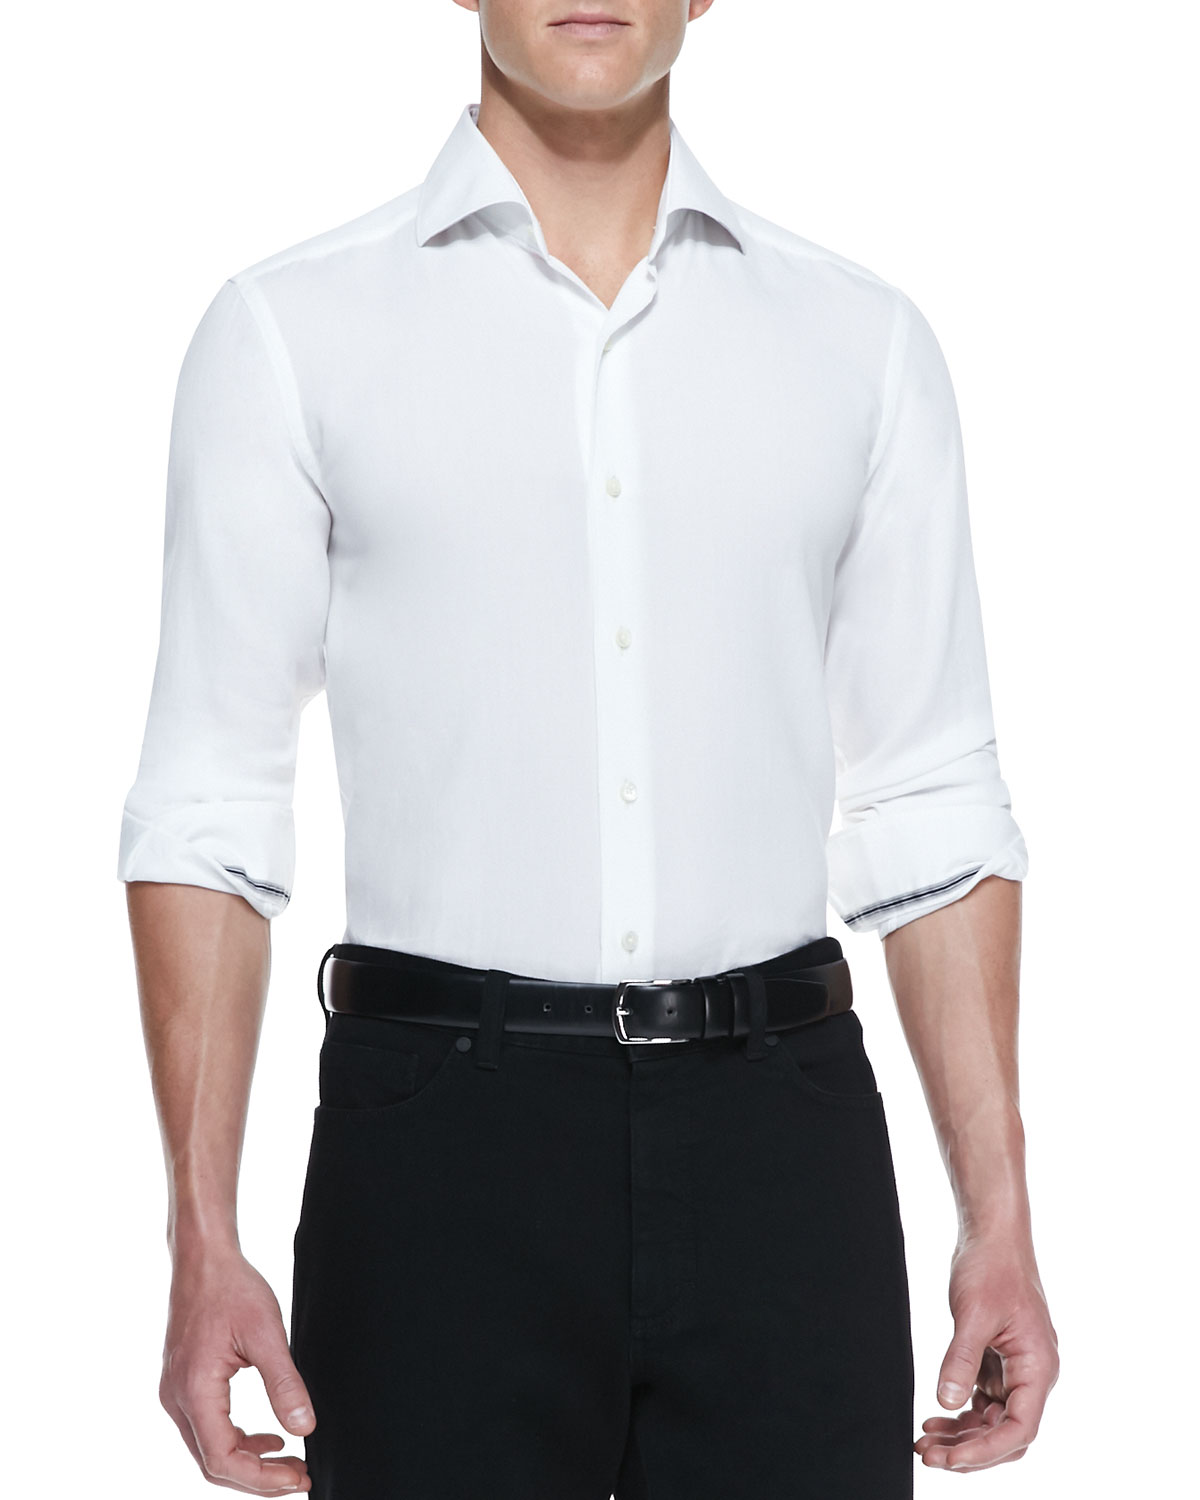 Mens Solid Pique Long Sleeve Shirt, White   Ermenegildo Zegna   White (LARGE)